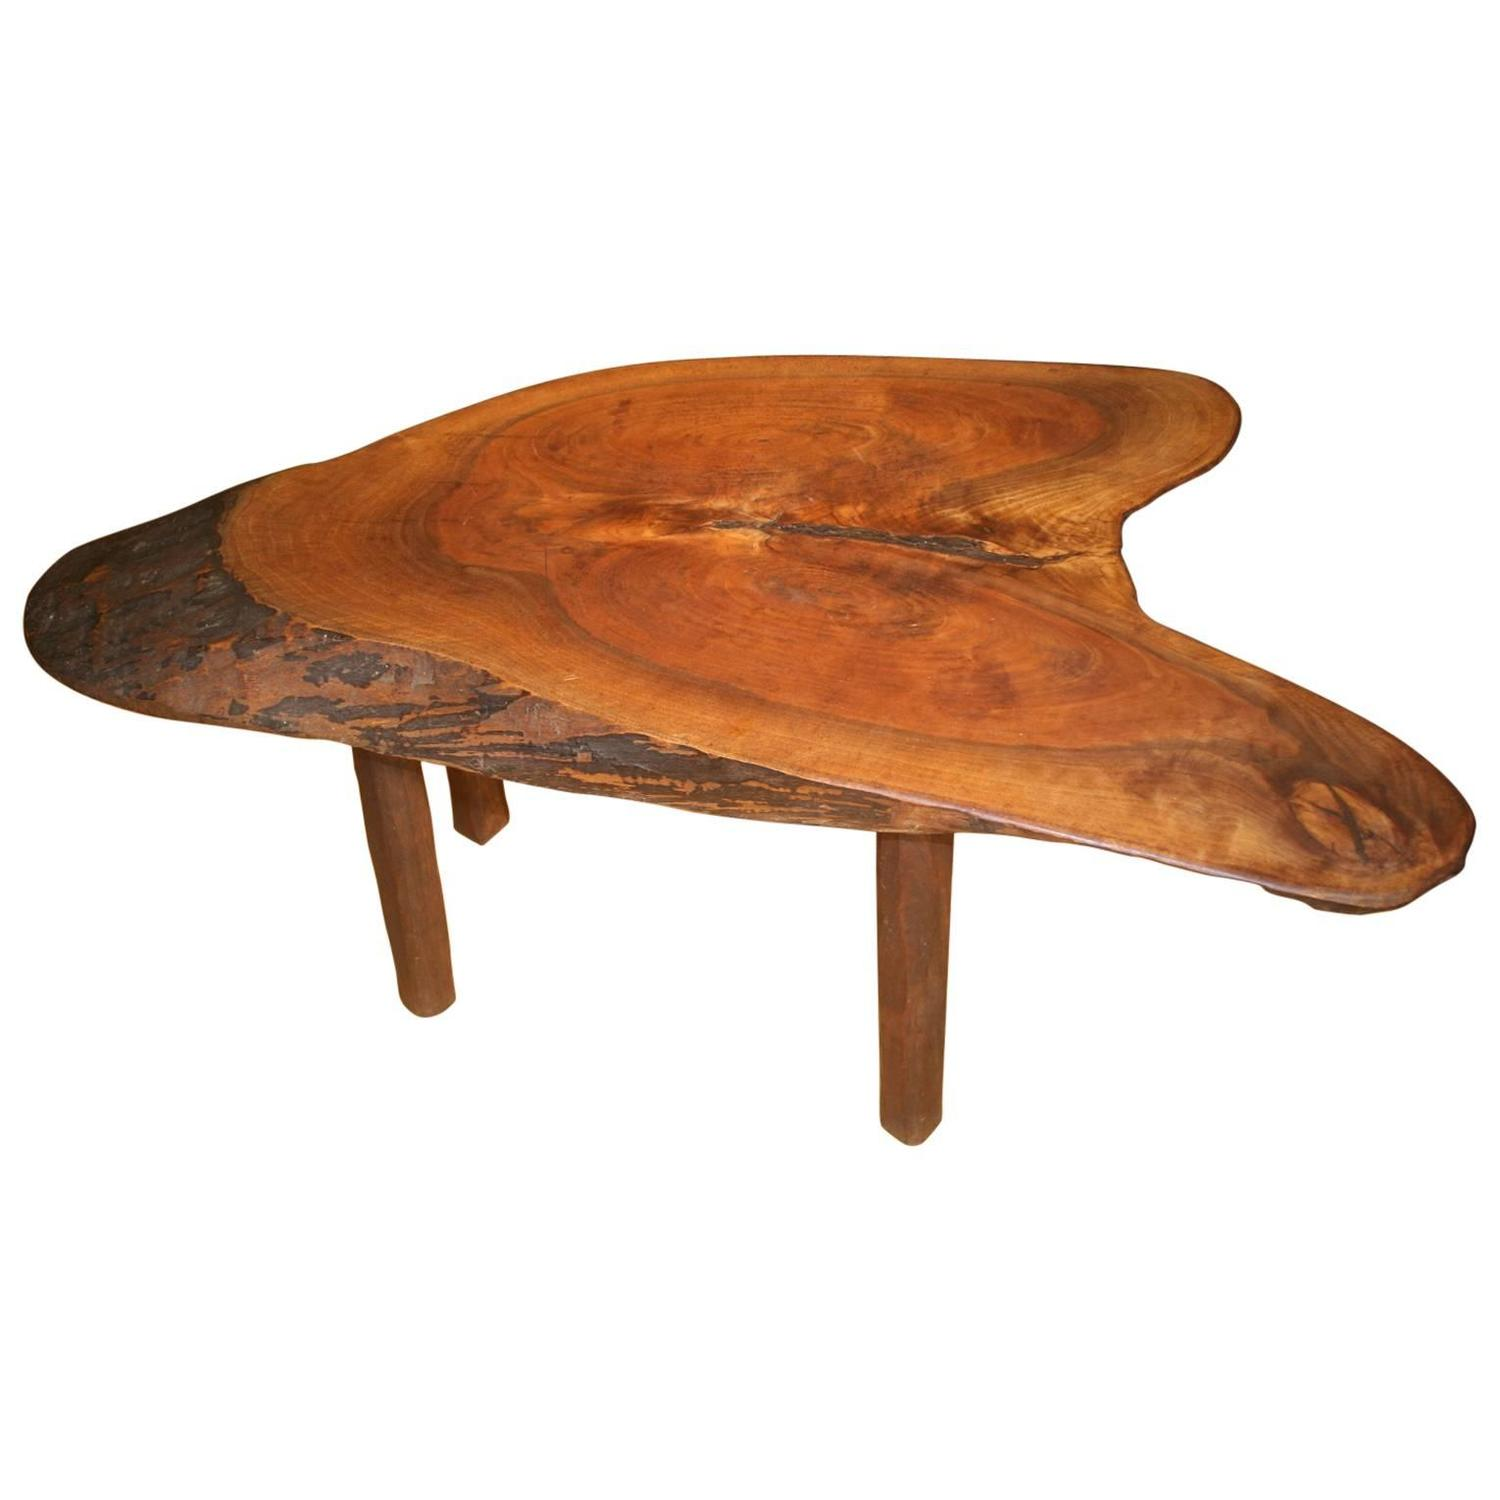 Natural form tree trunk coffee table at 1stdibs Trunks coffee tables